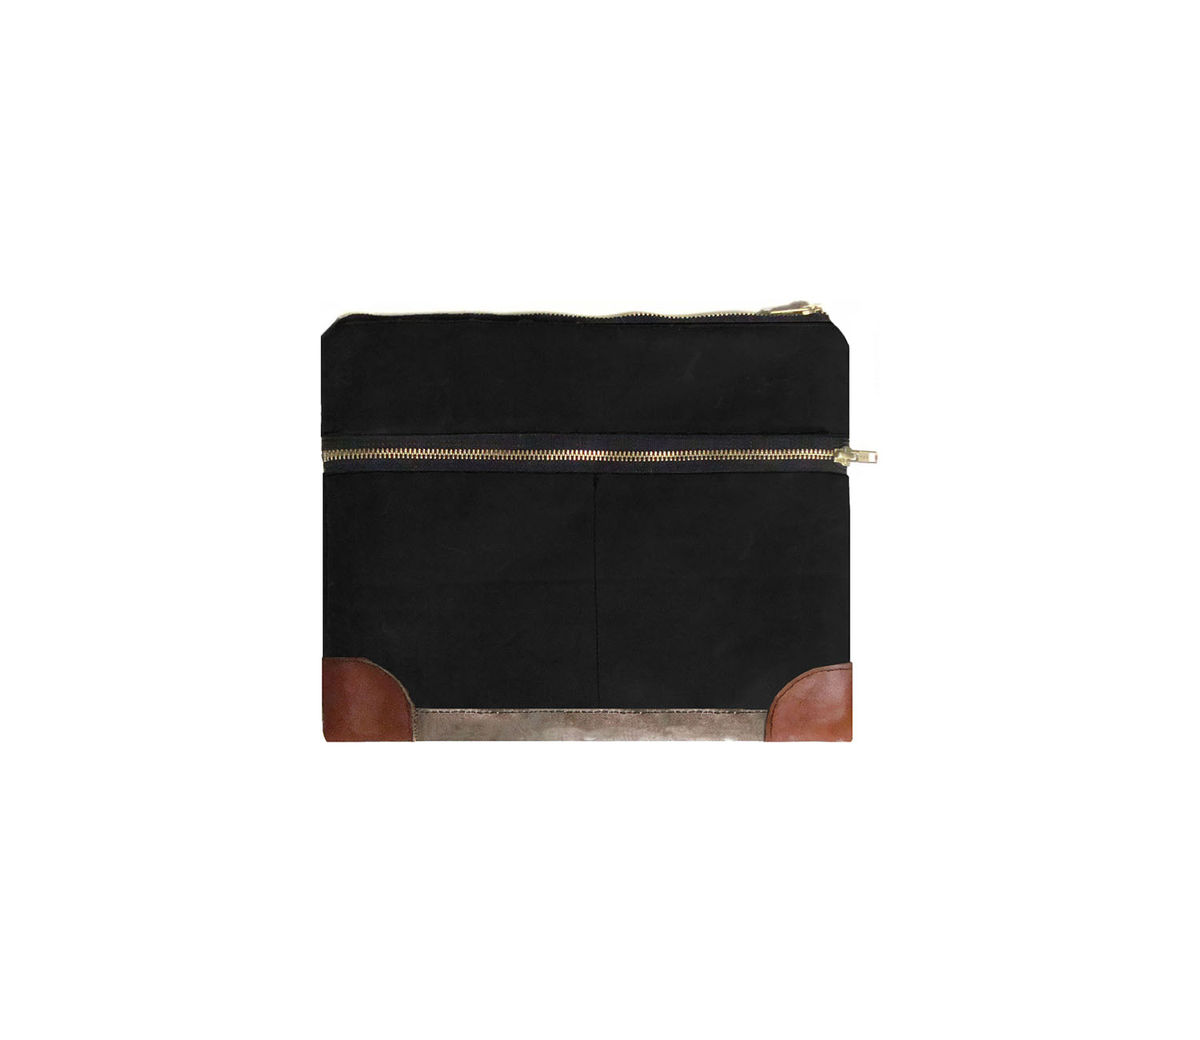 Everything iPad Case, Waxed Canvas, Leather, Custom Dyed in Resistance Black - product images  of